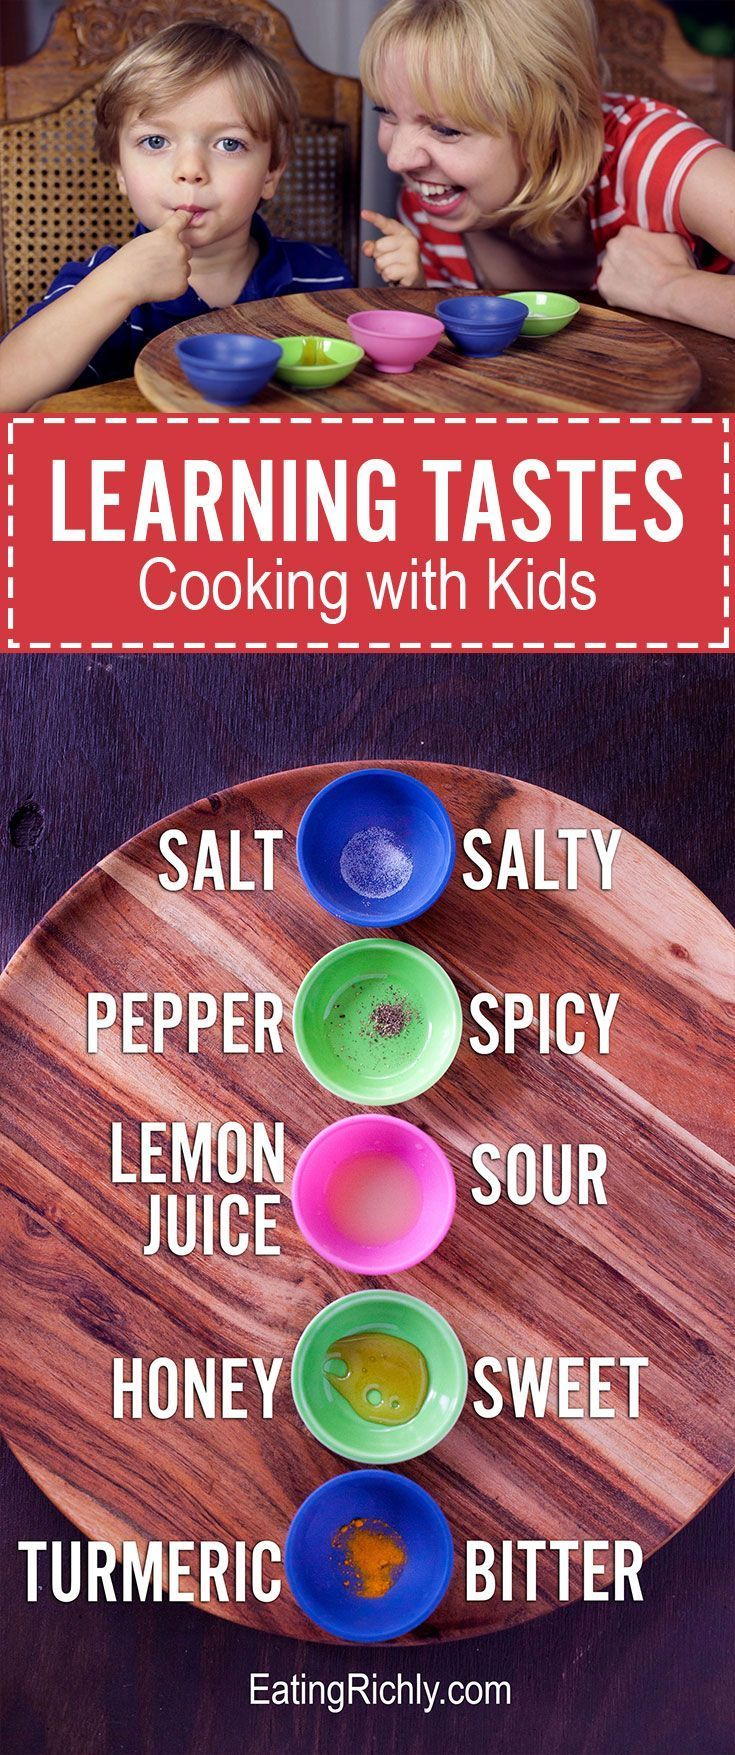 One of the best cooking games for kids uses simple ingredients to teach them about taste. Help your child develop their palate as they play!